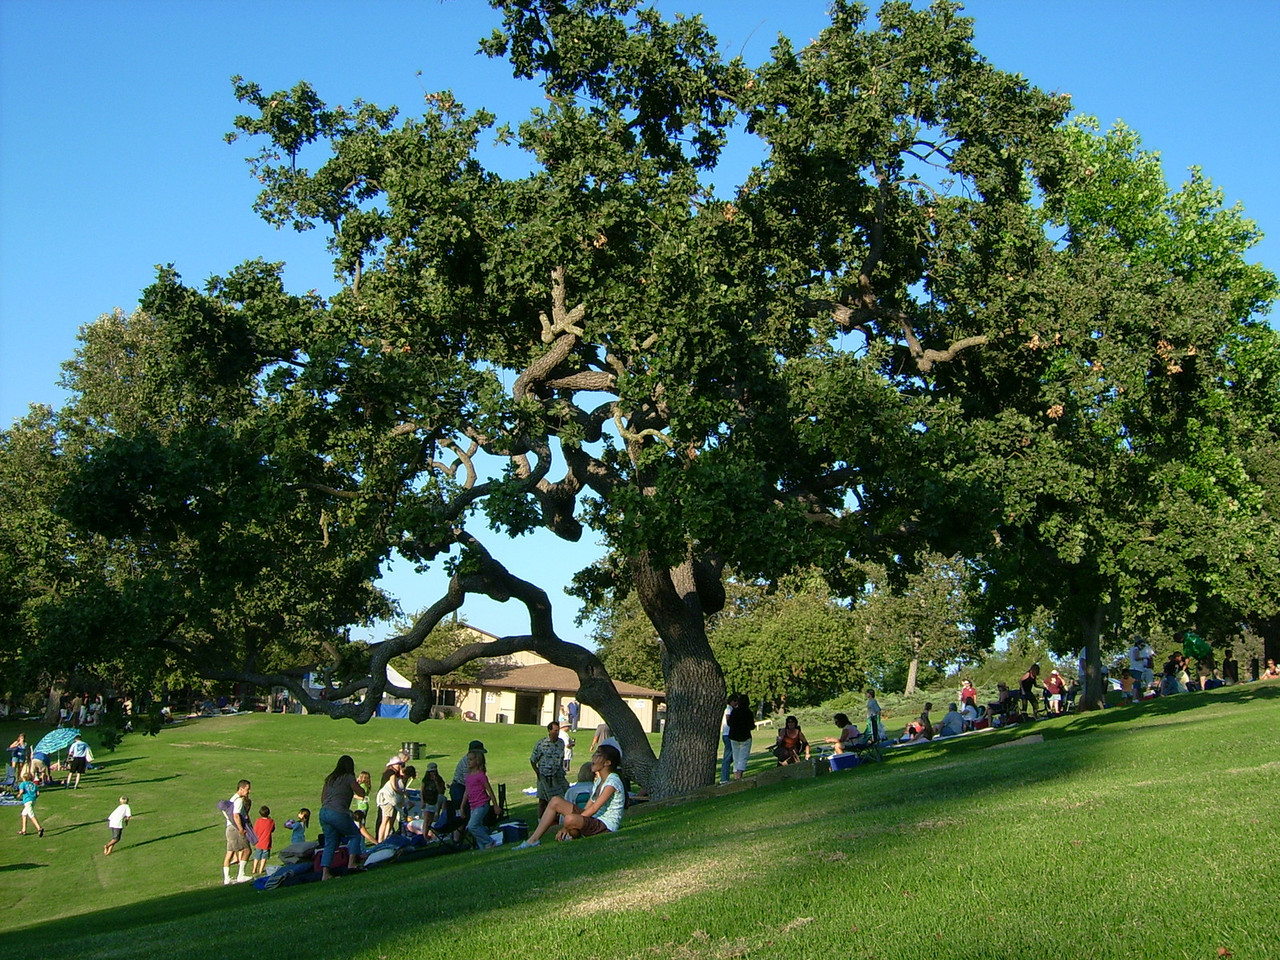 Folks gathered under the shade of the magnificient old oaks at Conejo Community Park for the concert.  The featured group was 'Tin Drum' a group of studio musicians for well known headliners, putting their own jam together for the afternoon.